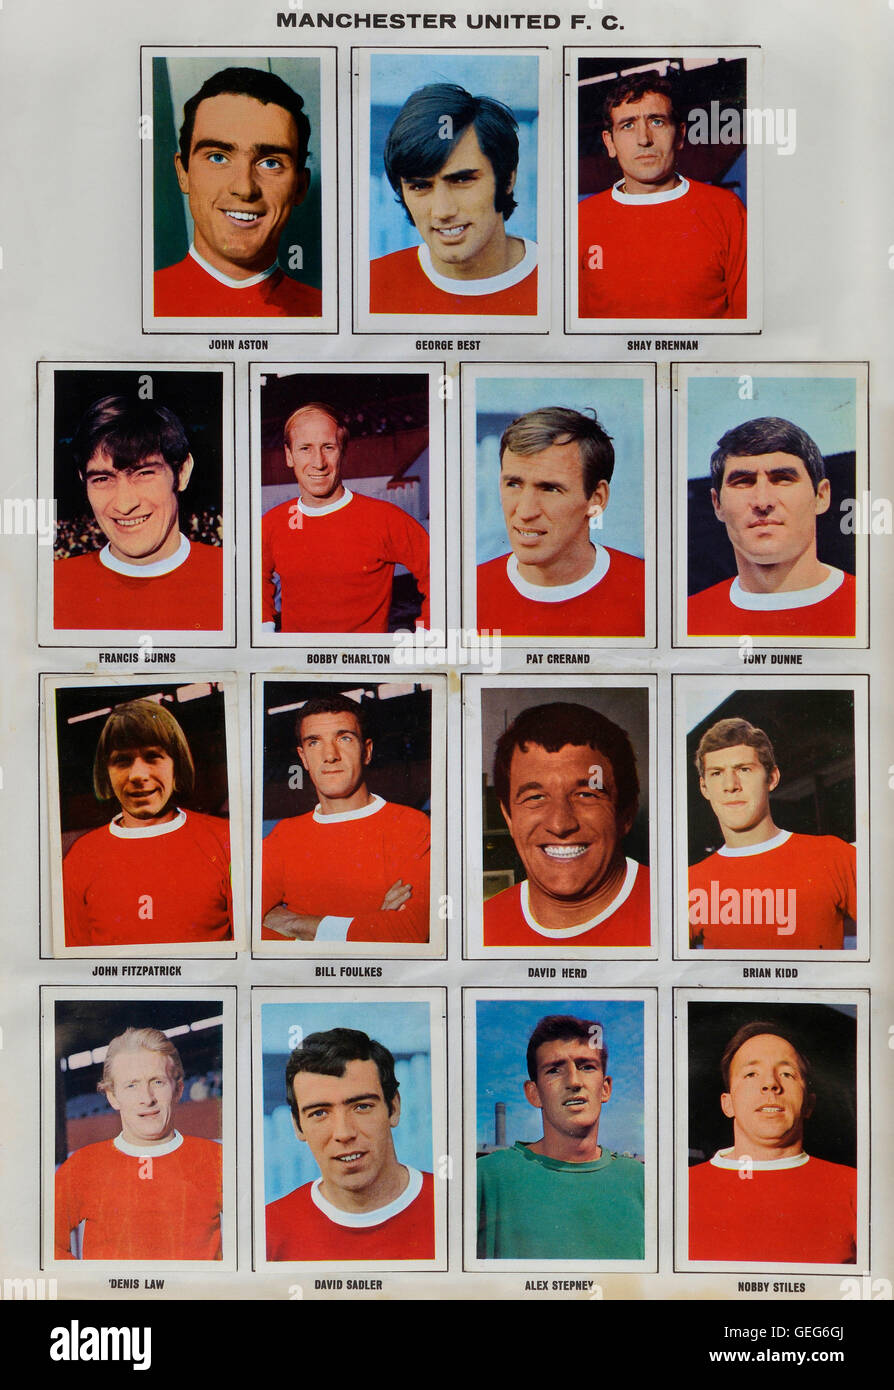 The wonderful world of soccer stars picture stamp album 1968-1969 of the Manchester United squad - Stock Image